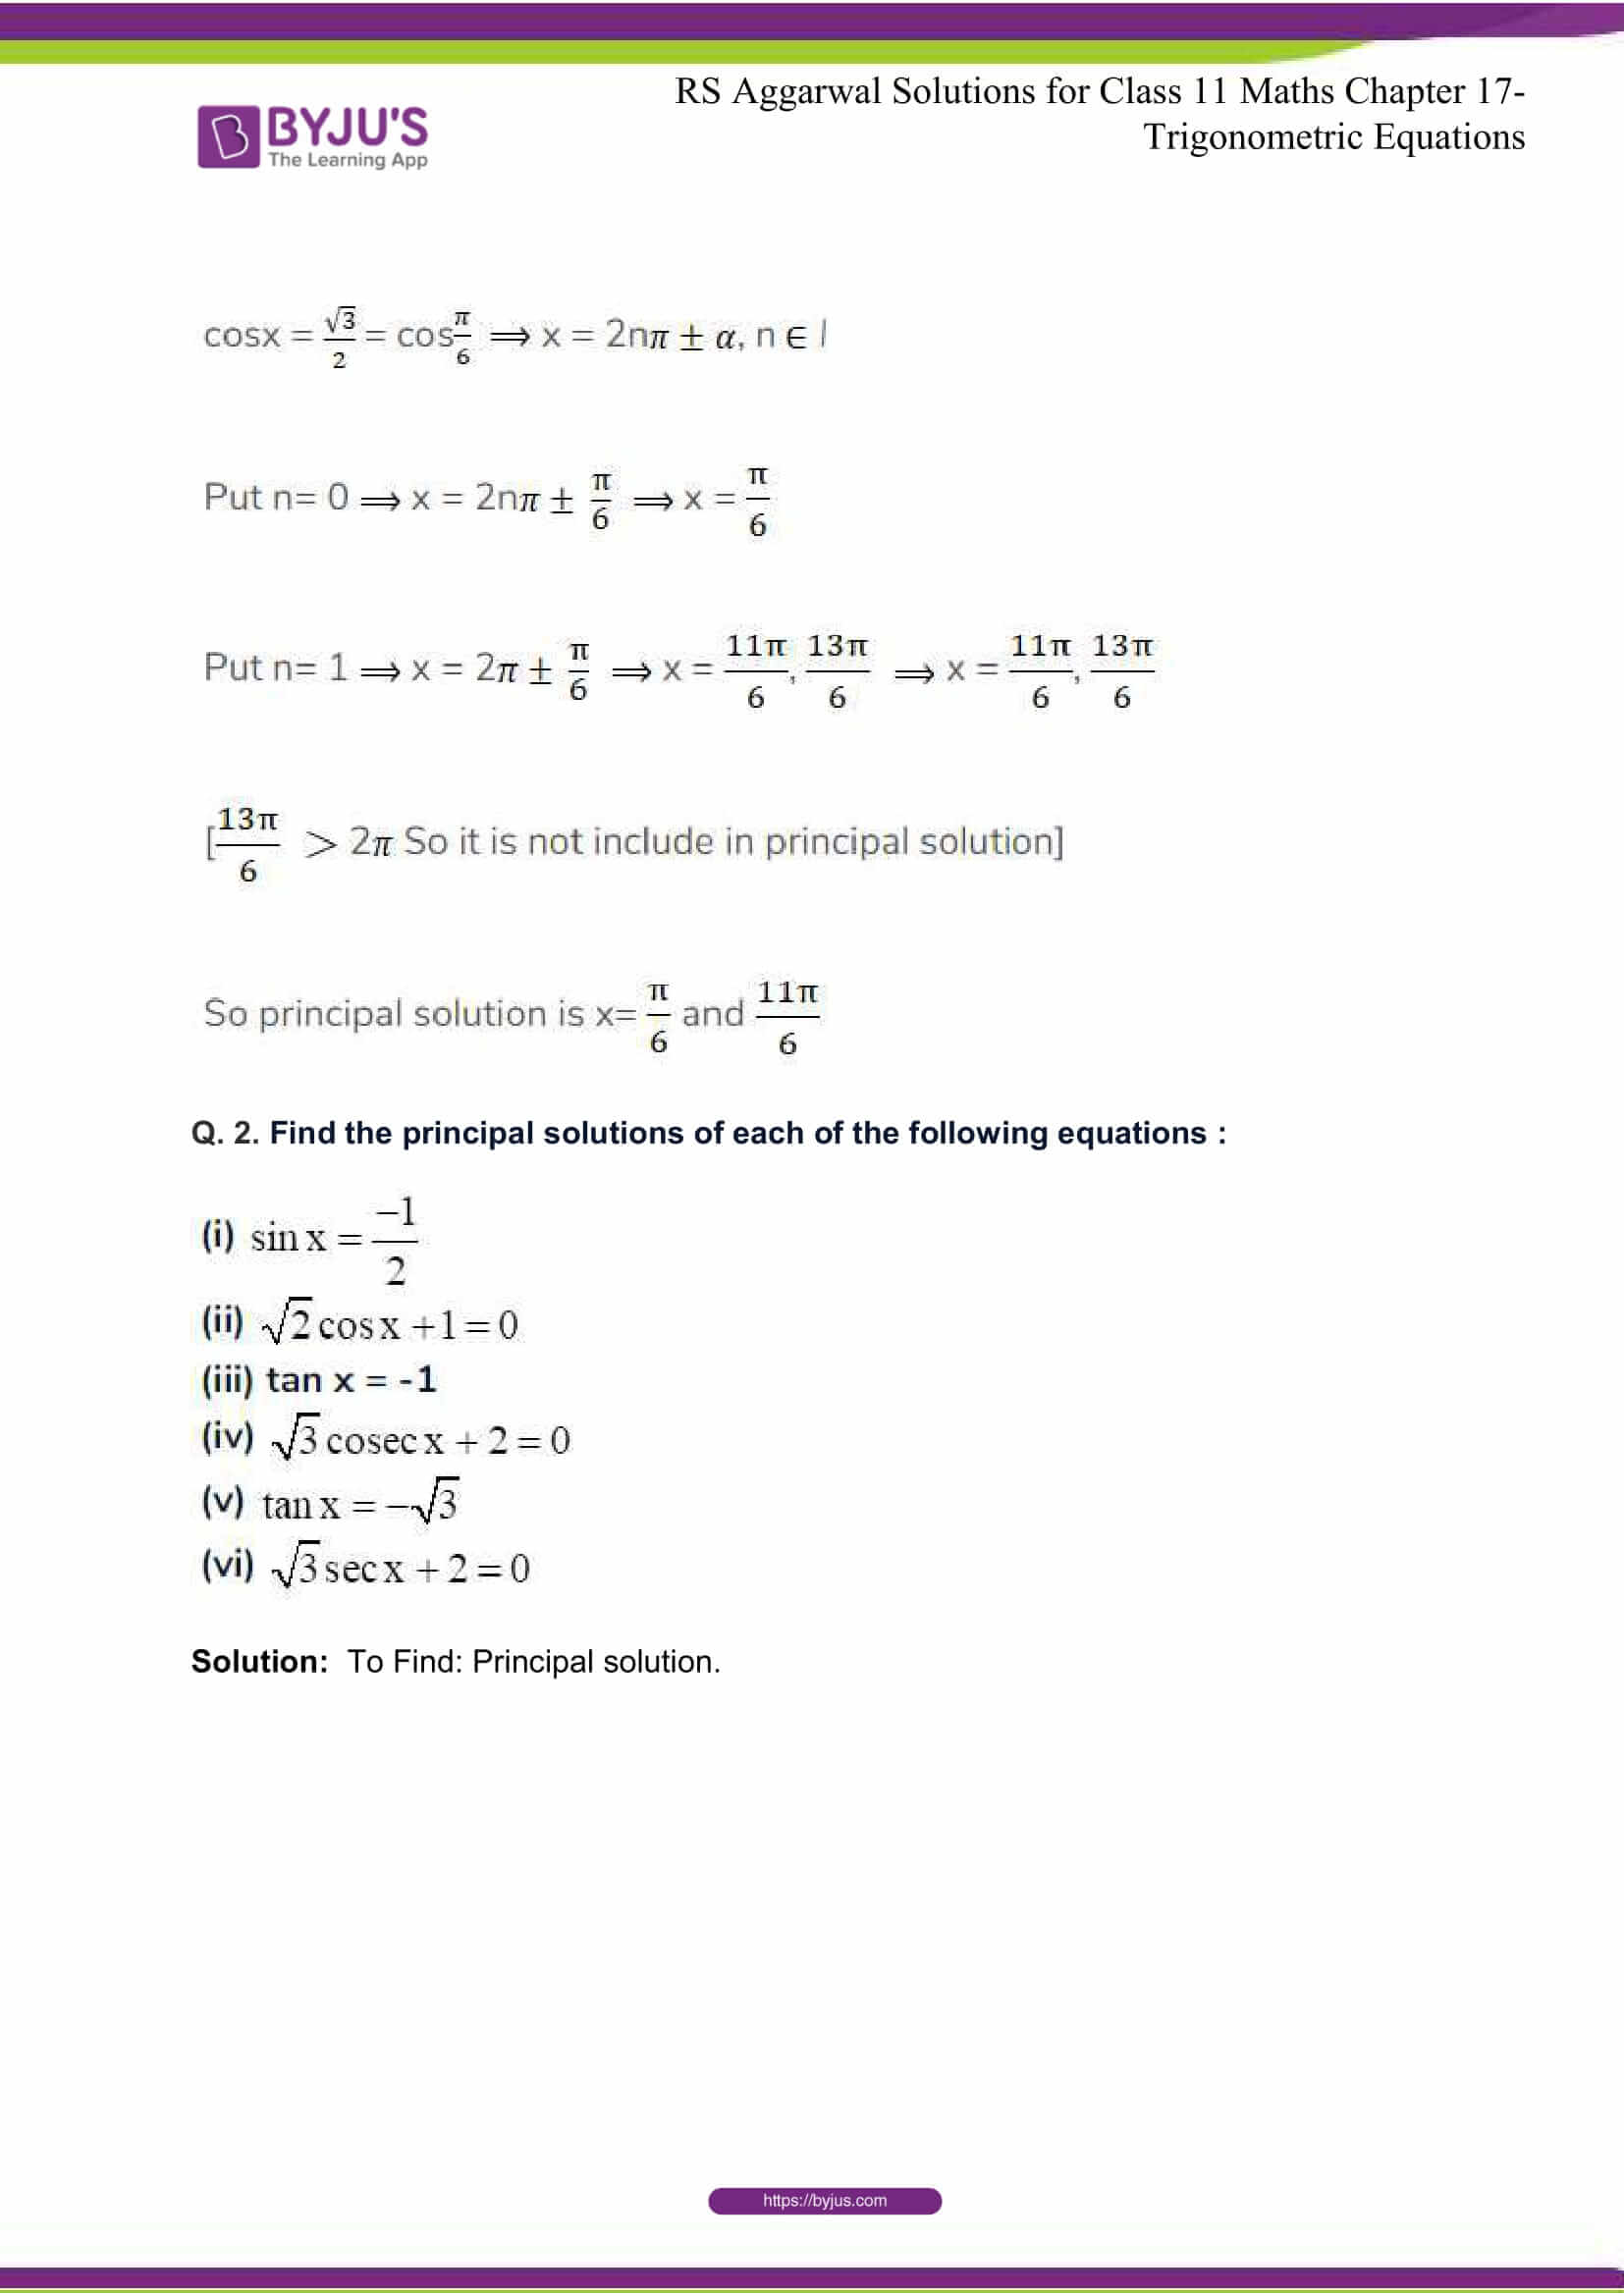 rsaggarwal solutions class 11 maths chapter 17 07